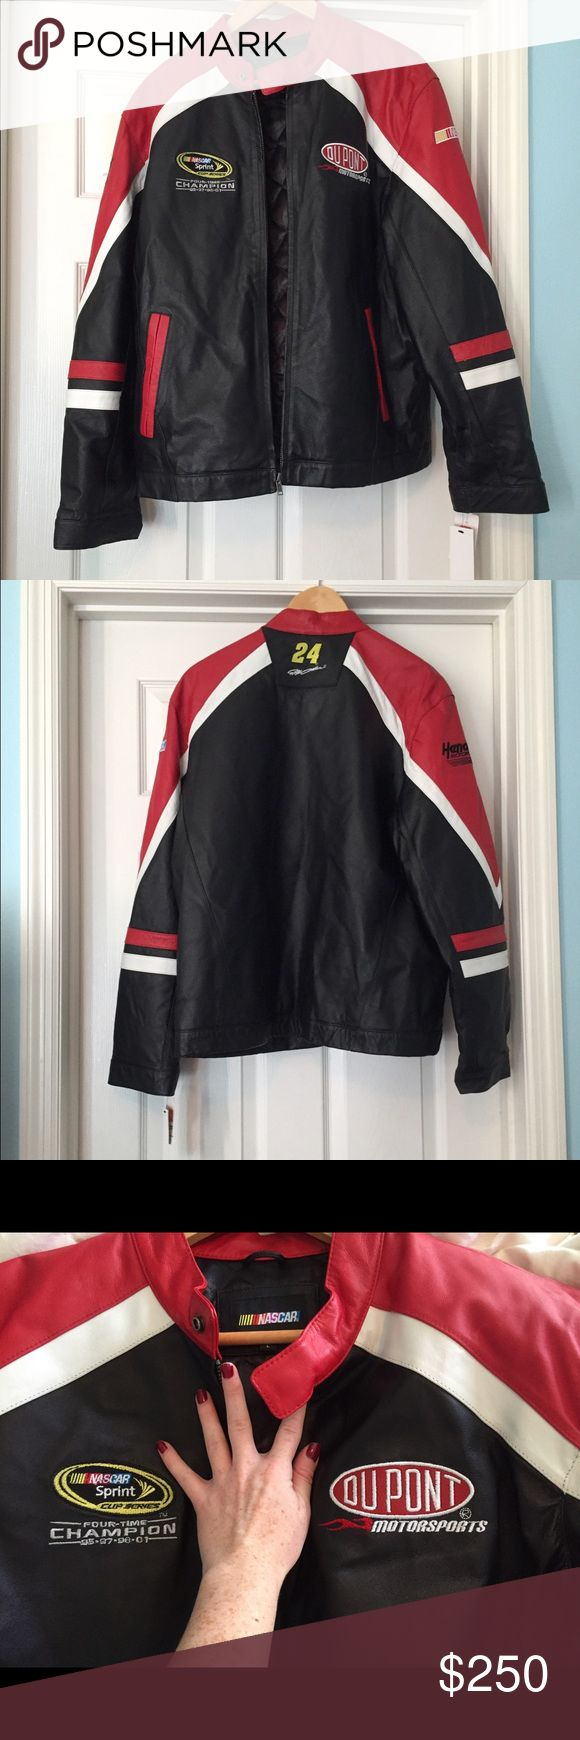 Leather NASCAR Jacket! (Jeff Gordon, 24) Brand New with tags official NASCAR jacket!! It's a beautiful leather coat for any NASCAR fan! On the back it has Jeff Gordon's number 24!!!! This will make a great birthday gift for any fan of Jeff Gordon or NASCAR fan! The holidays are coming up to ☺️👏 make me an offer! ☺️ NASCAR Jackets & Coats Performance Jackets